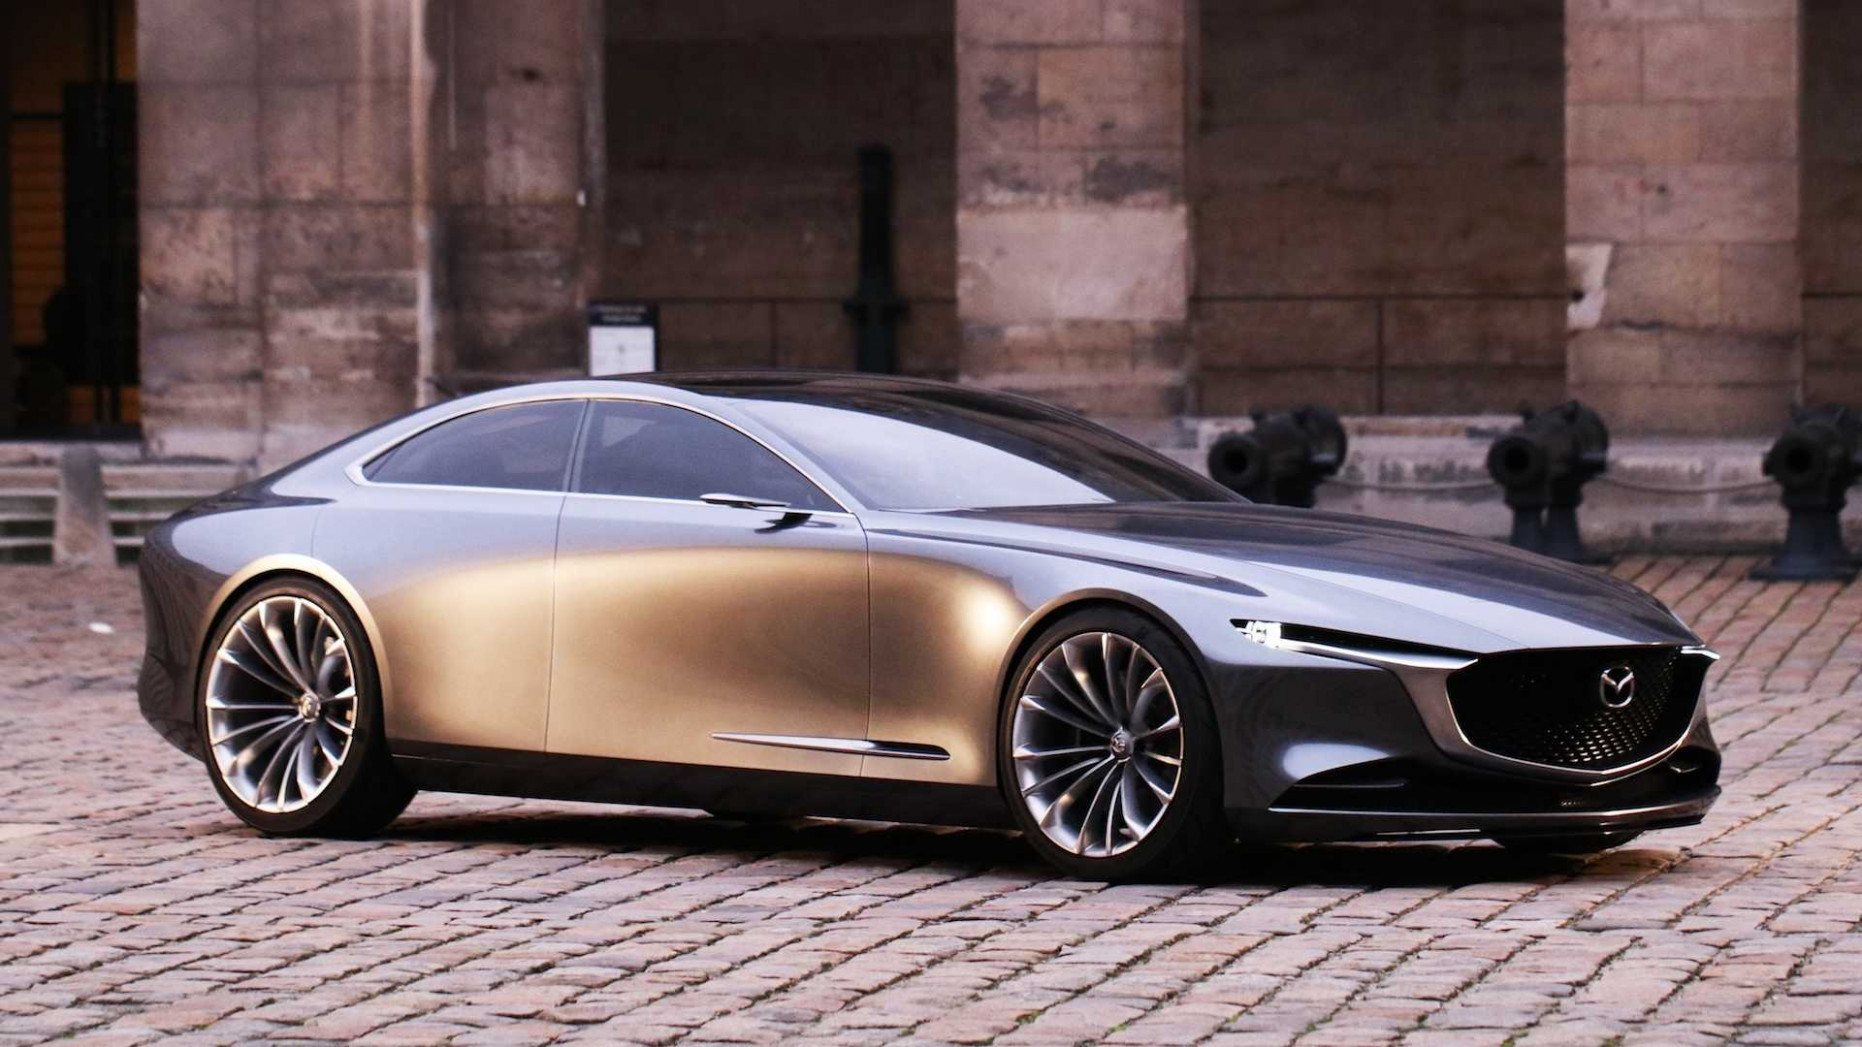 Configurations When Is The 2022 Mazda 6 Coming Out